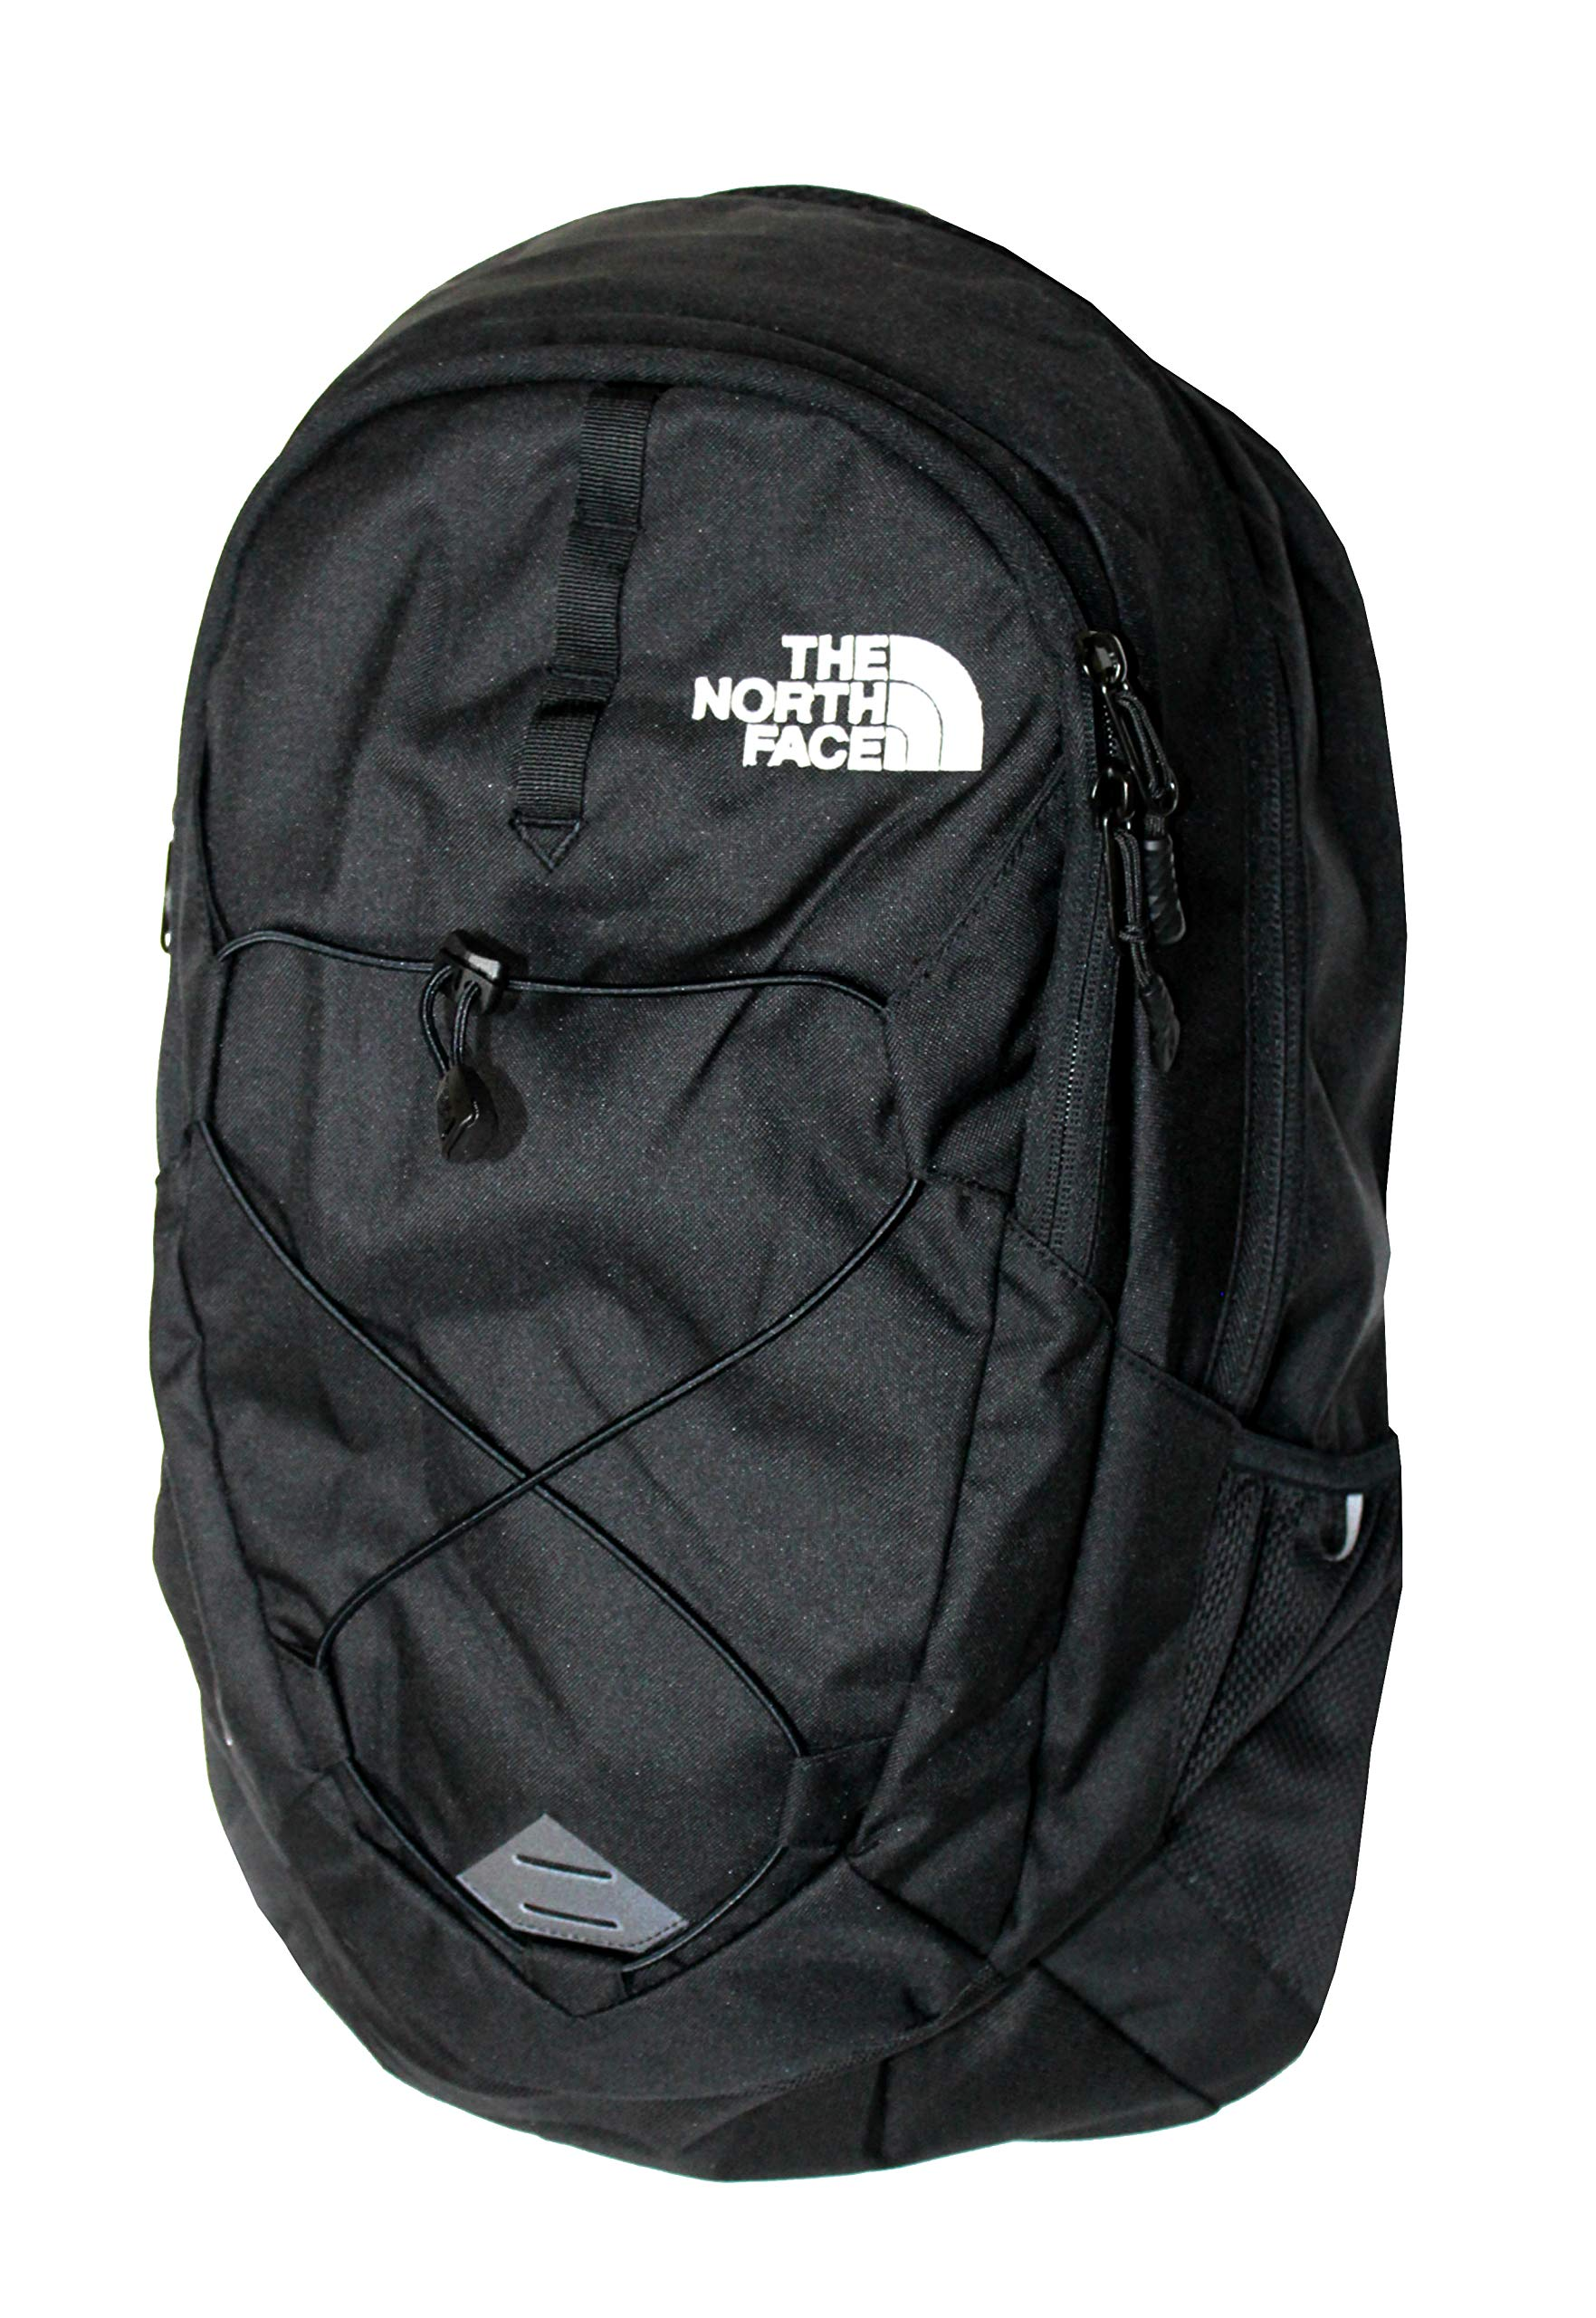 The North Face Unisex Jester School Student Backpack 21''X14''X6'' by The North Face